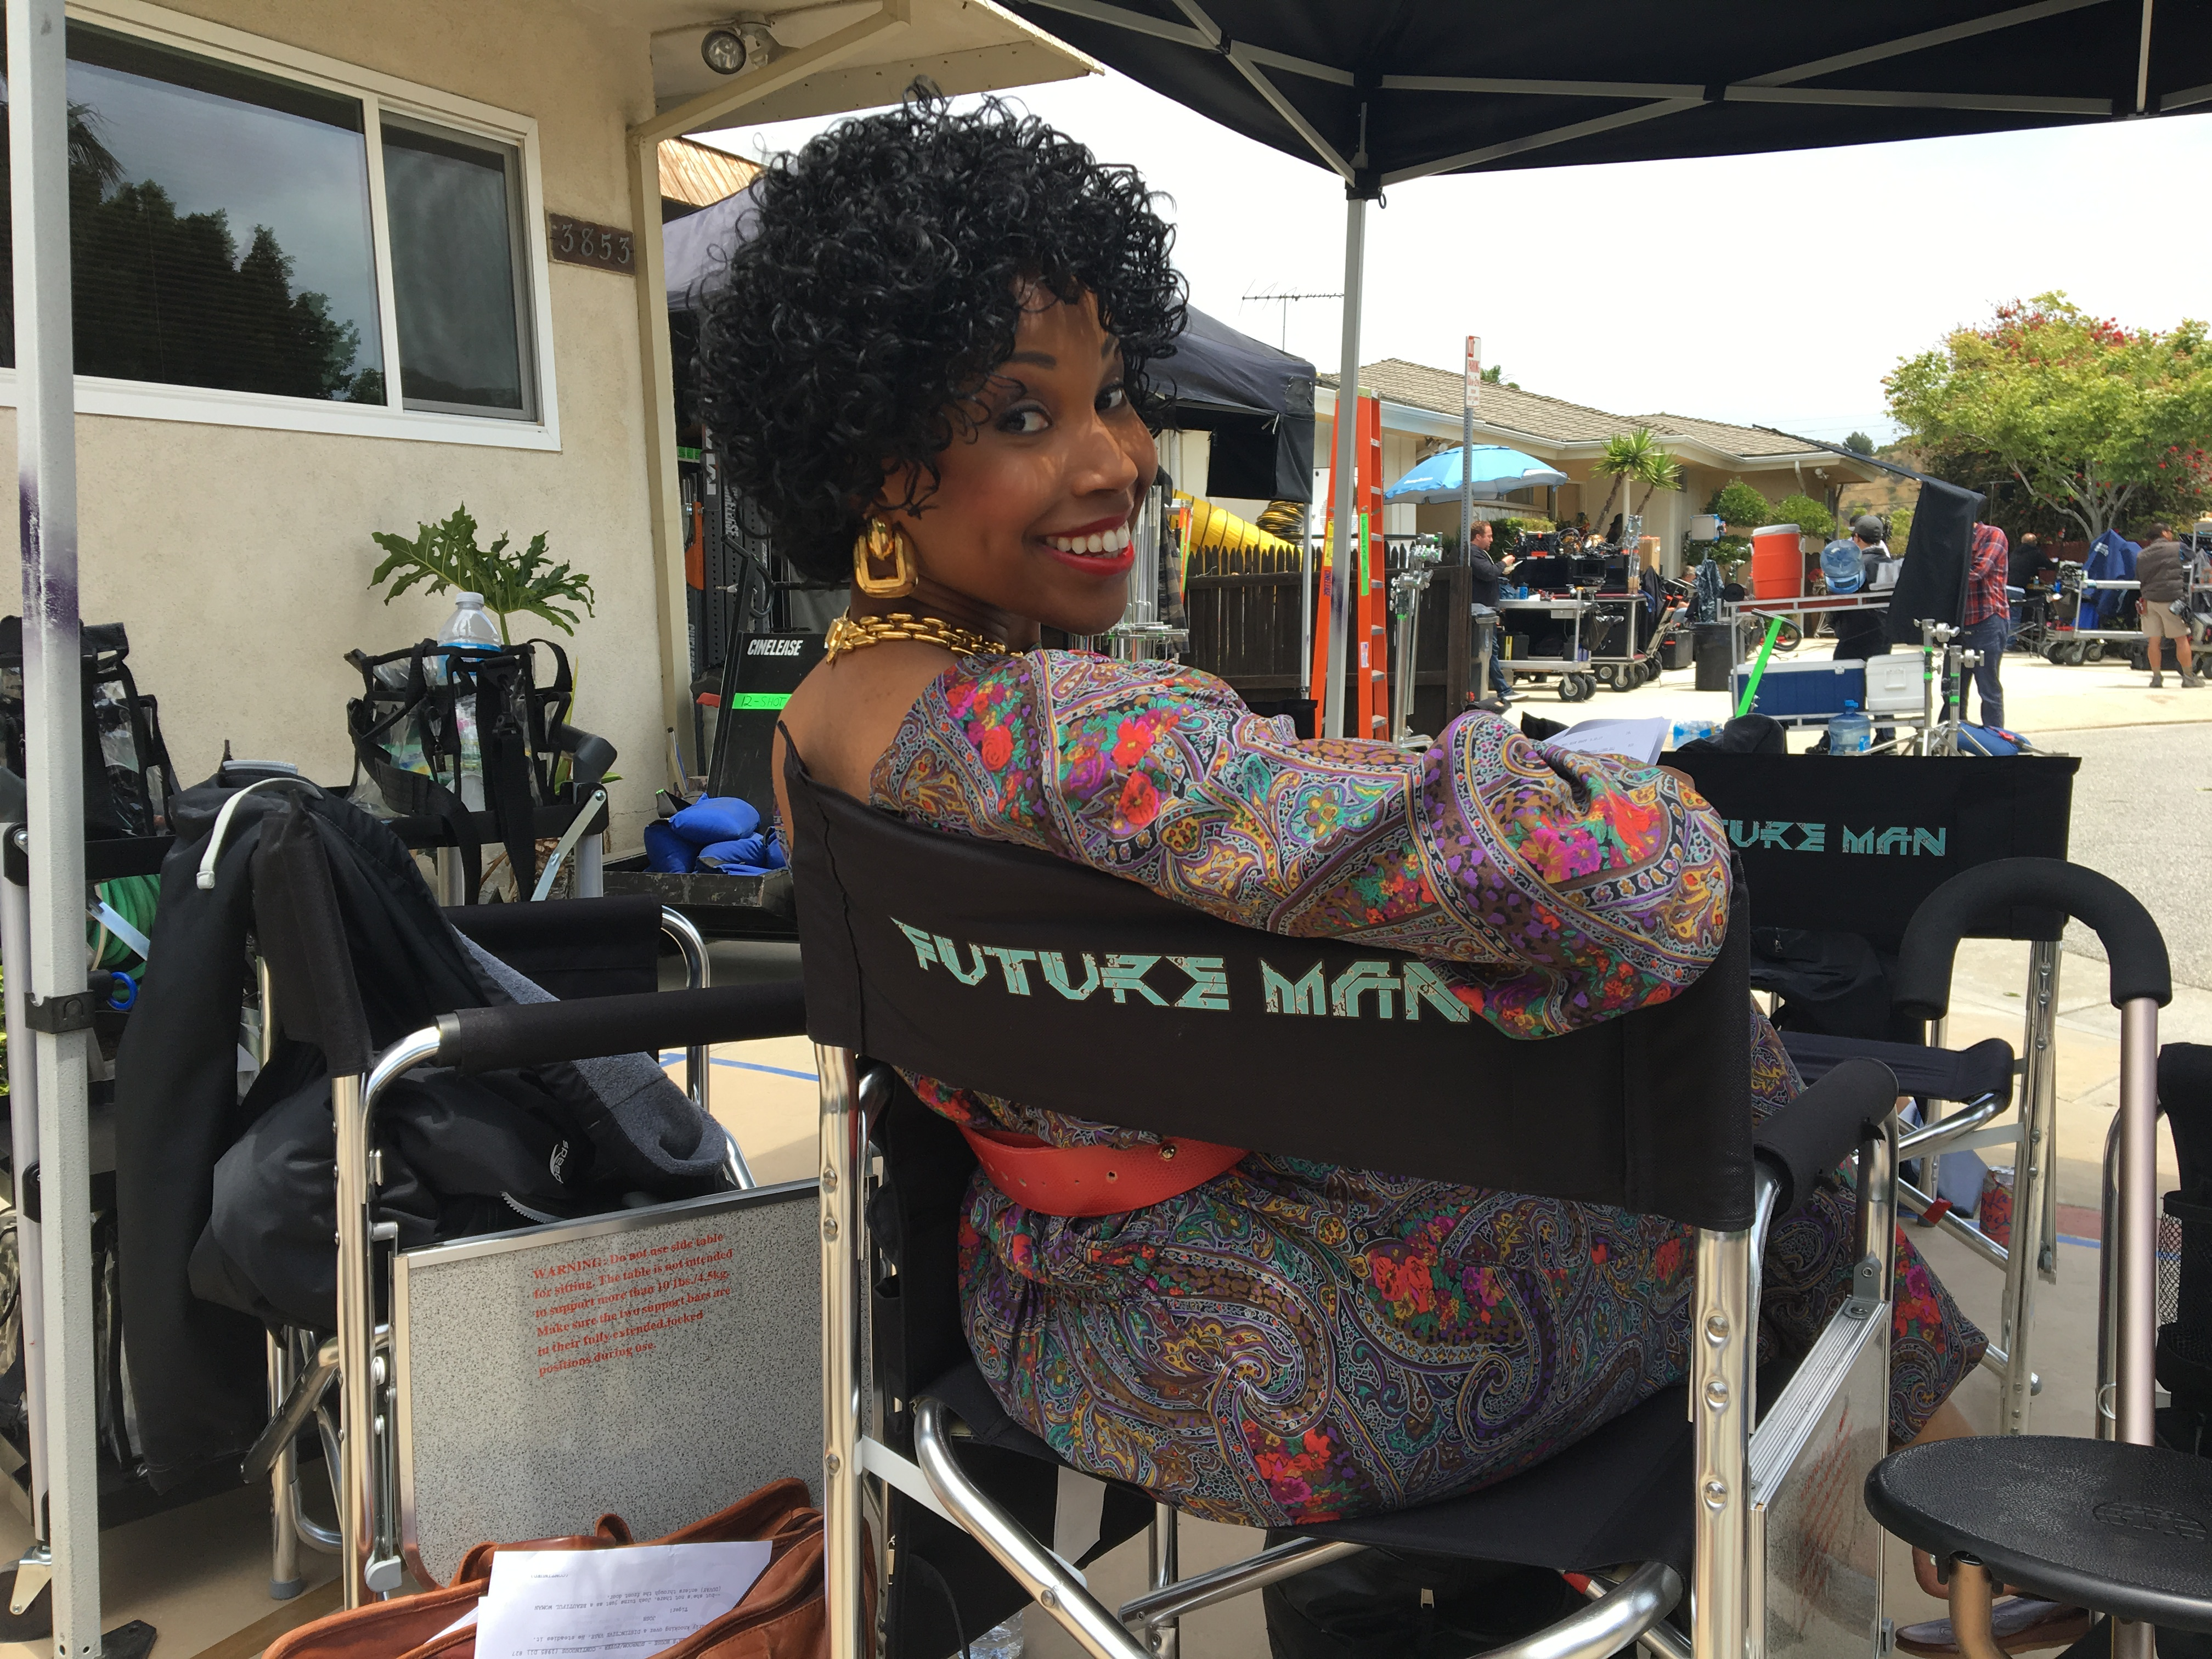 """Cloie Wyatt Taylor As """"Young Marigold"""" on set of Hulu's FUTURE MAN."""